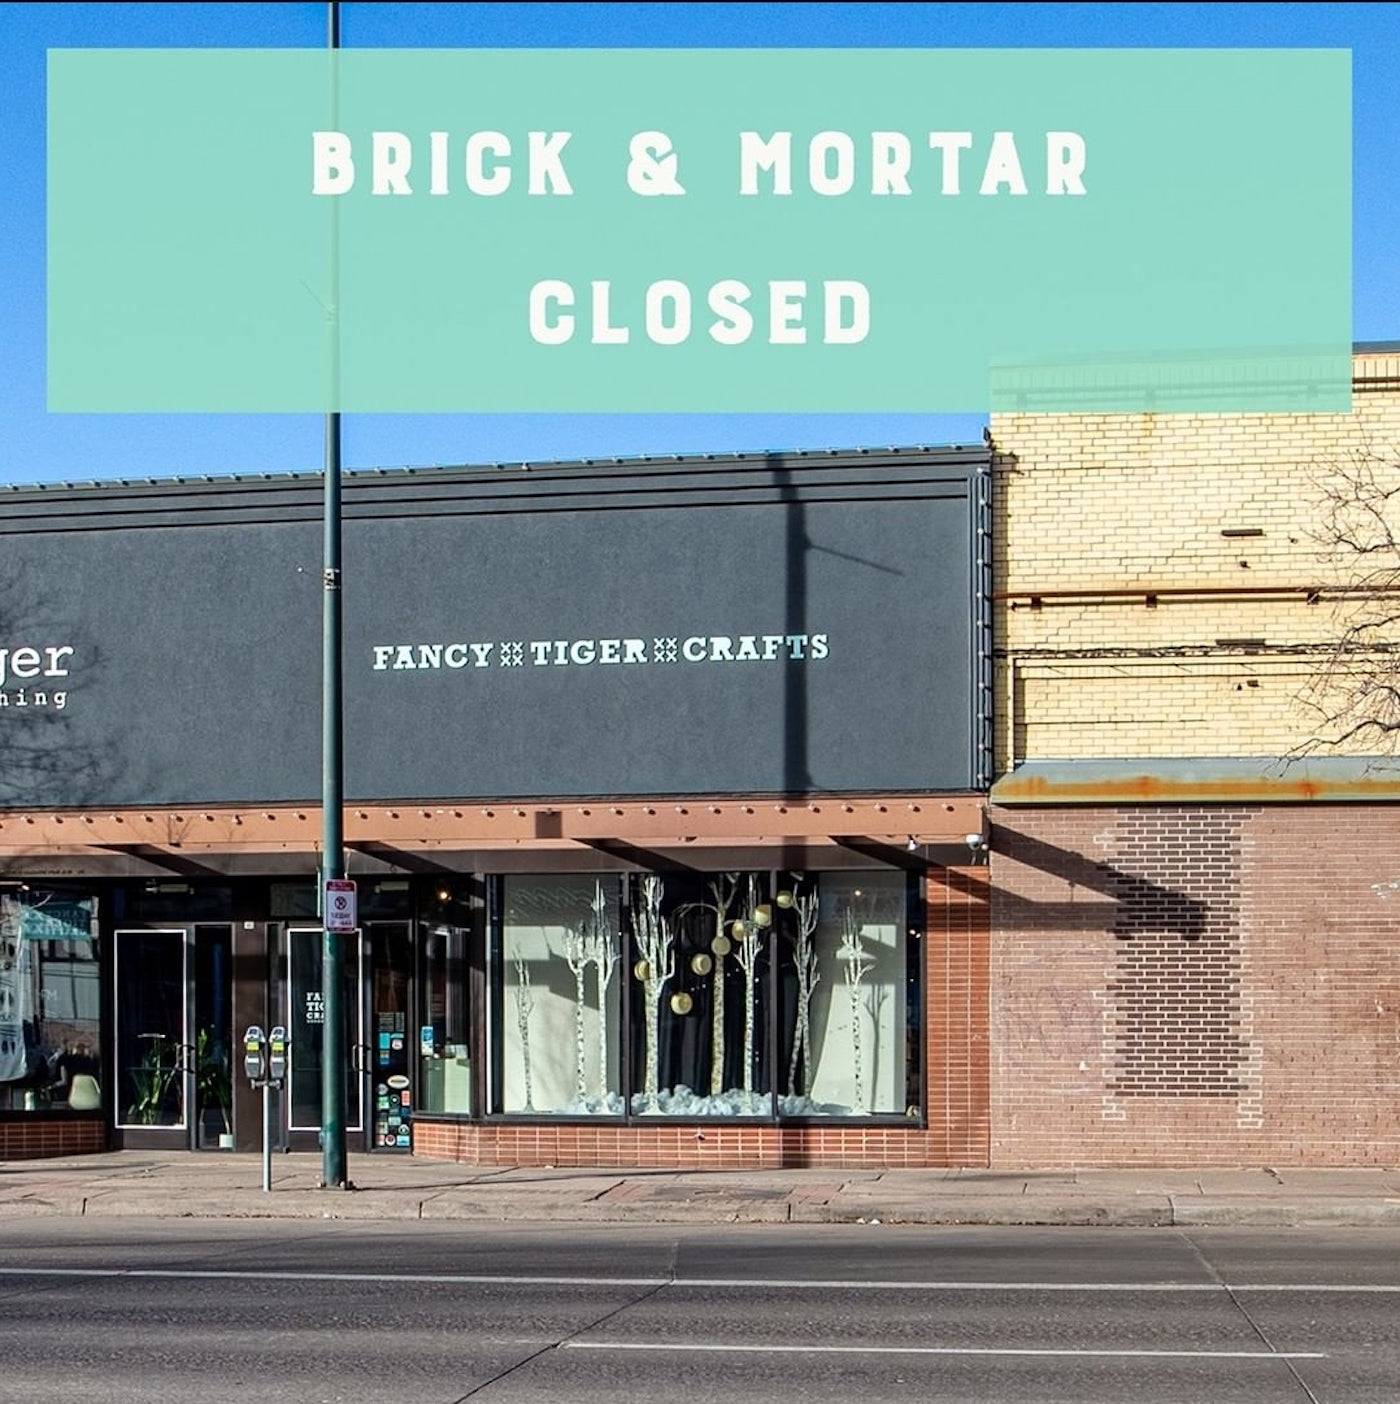 Store front with text overlay